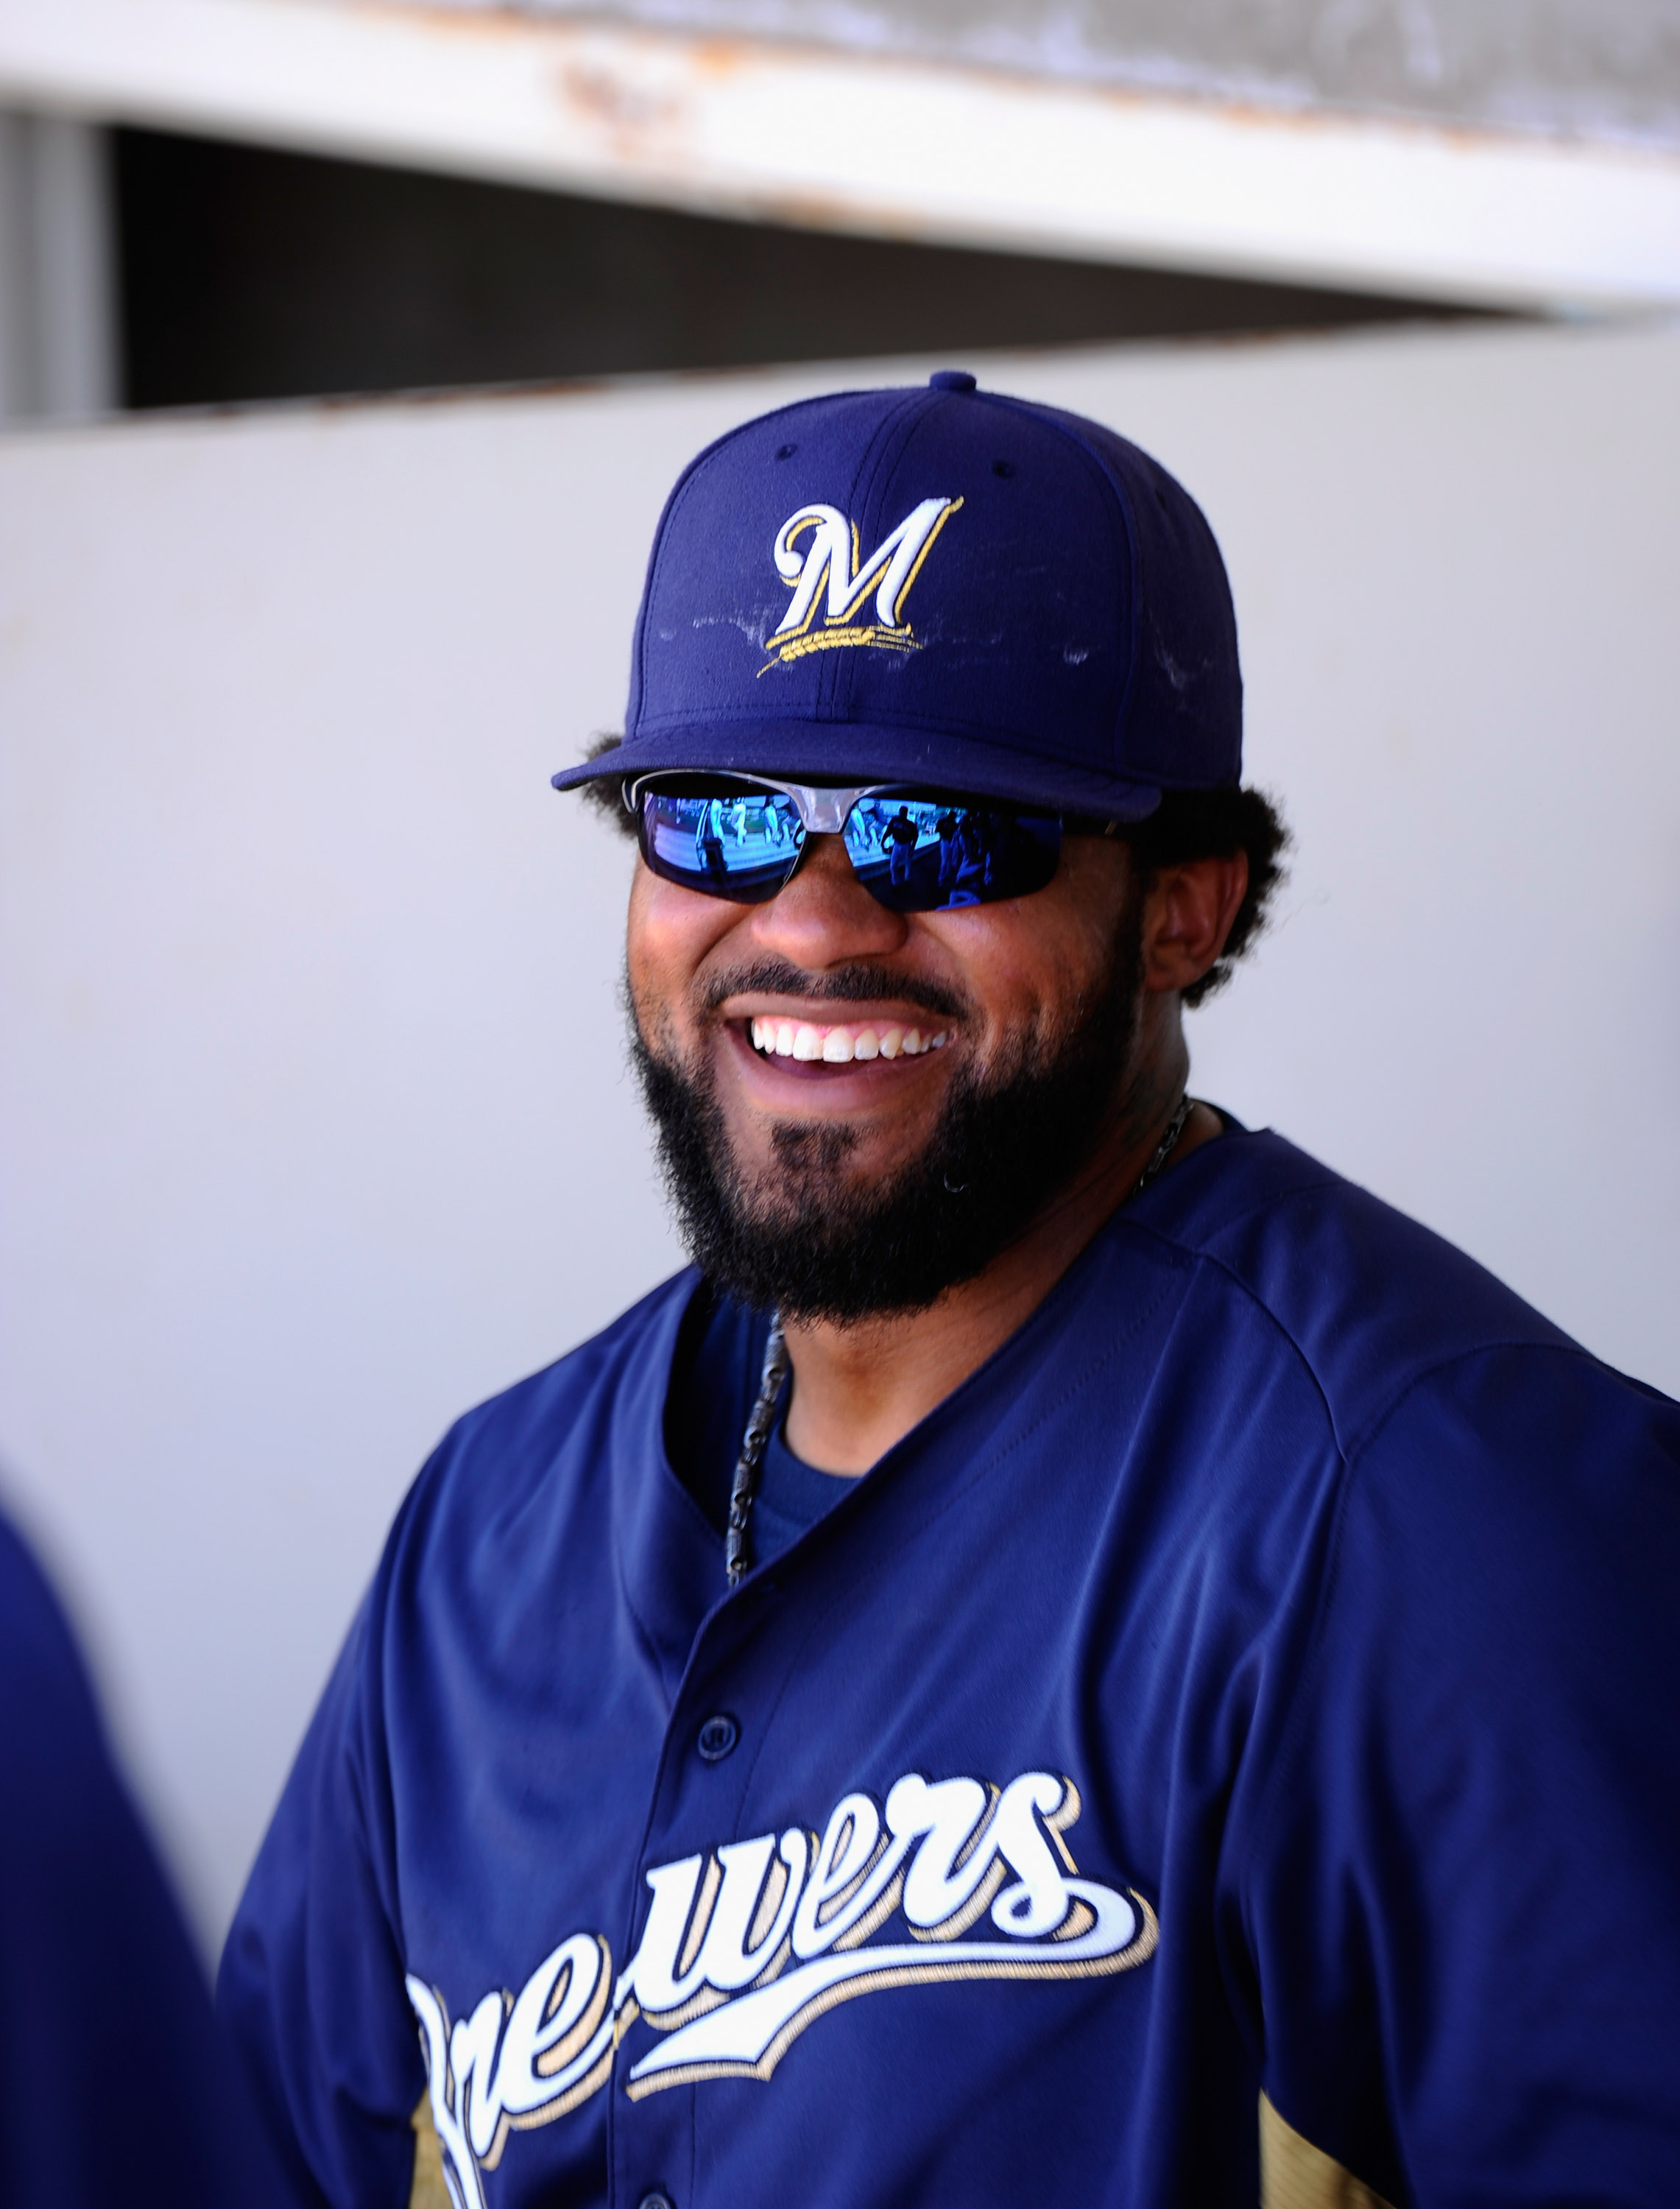 PHOENIX, AZ - MARCH 10:  Prince Fielder#28 of the Milwaukee Brewers in the dugout against the Colorado Rockies during spring training baseball game at Maryvale Baseball Park on March 10, 2011 in Phoenix, Arizona.  (Photo by Kevork Djansezian/Getty Images)